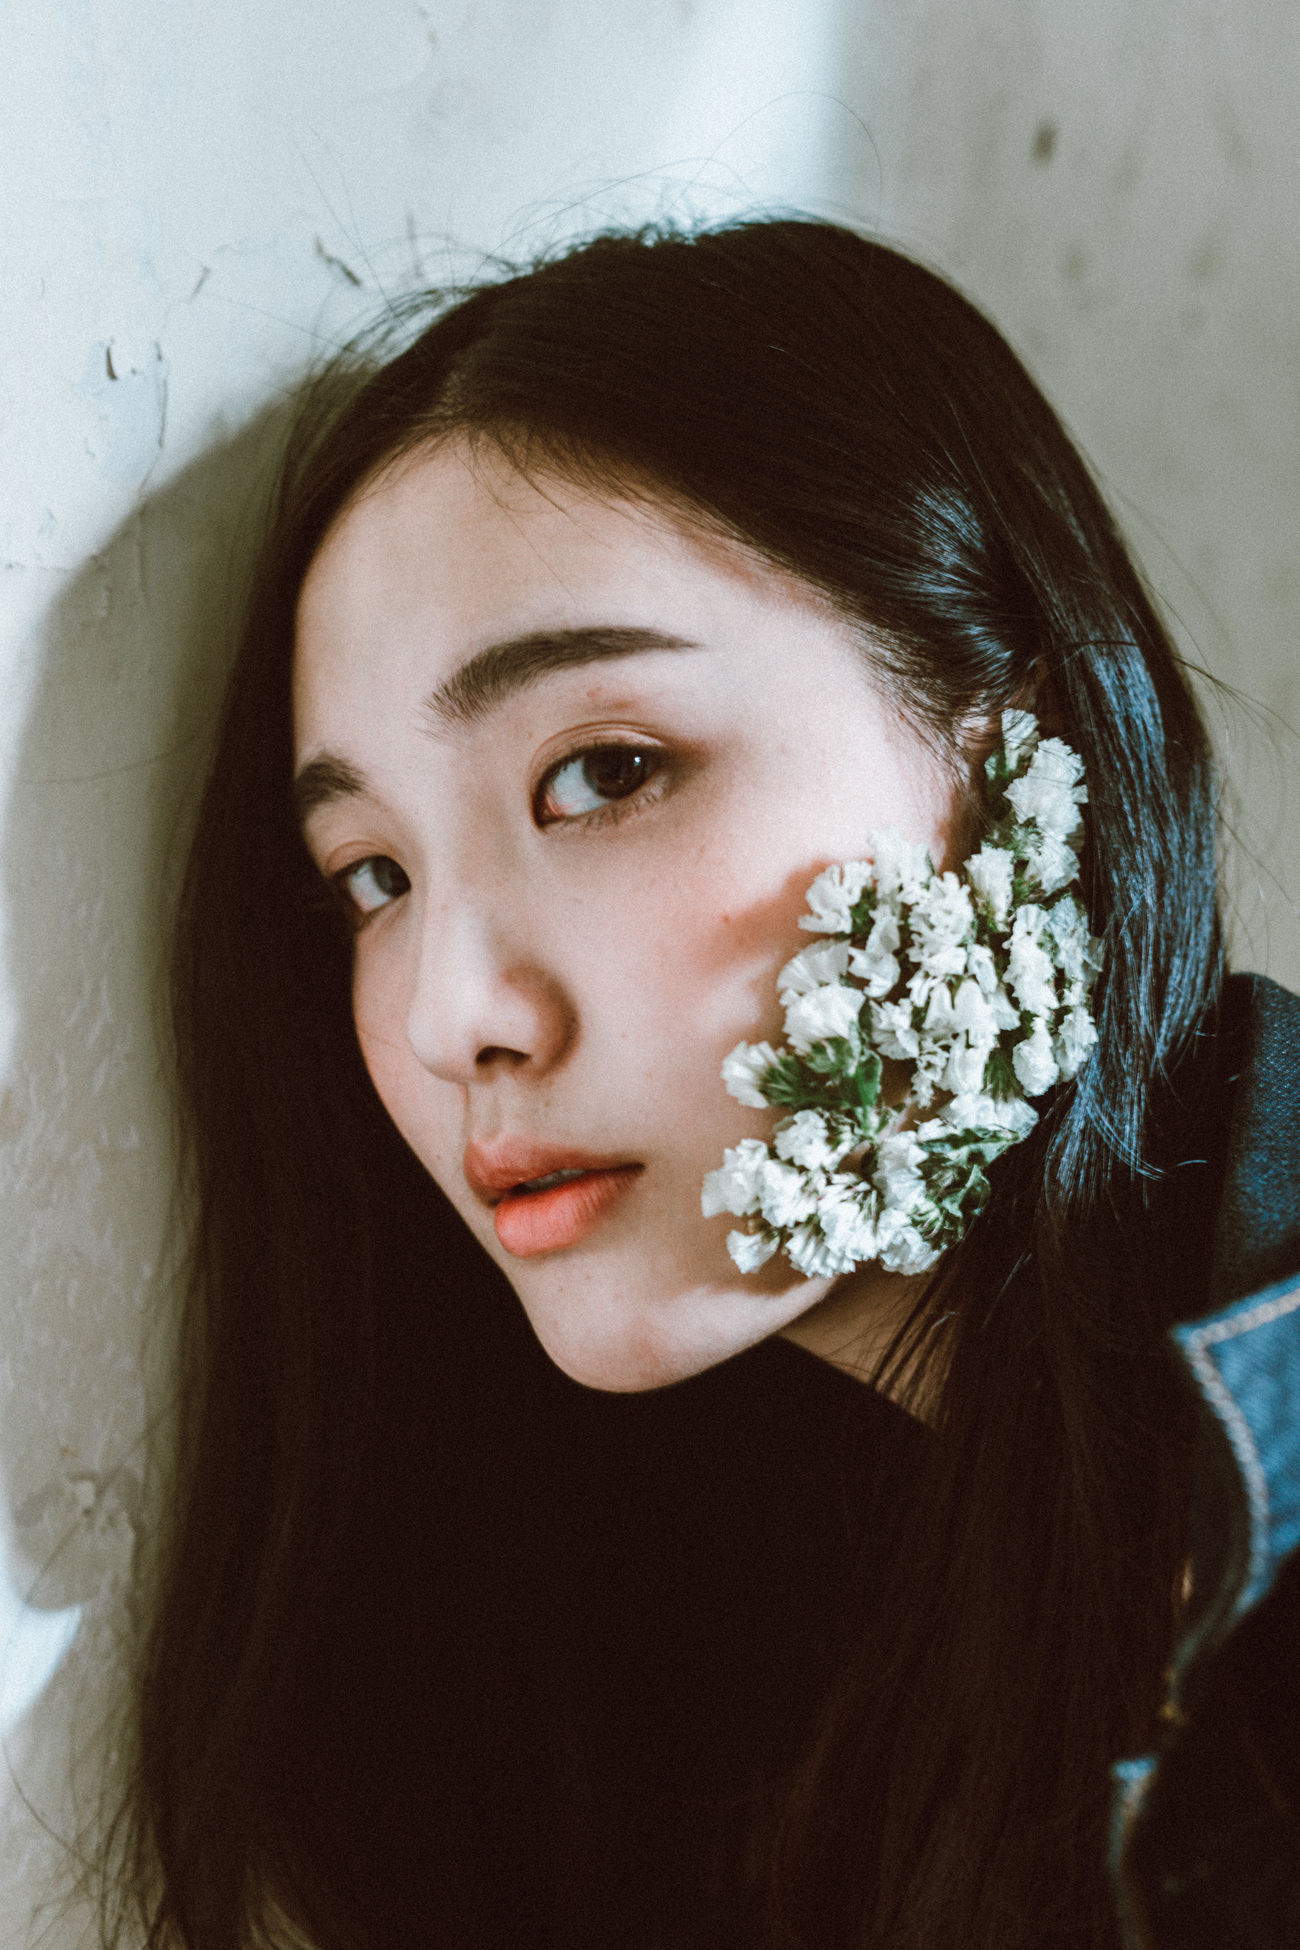 Beautiful Woman Close-up Day Flower Fragility Headshot Indoors  Lifestyles Looking At Camera One Person People Portrait Real People The Portraitist - 2017 EyeEm Awards Young Adult Young Women